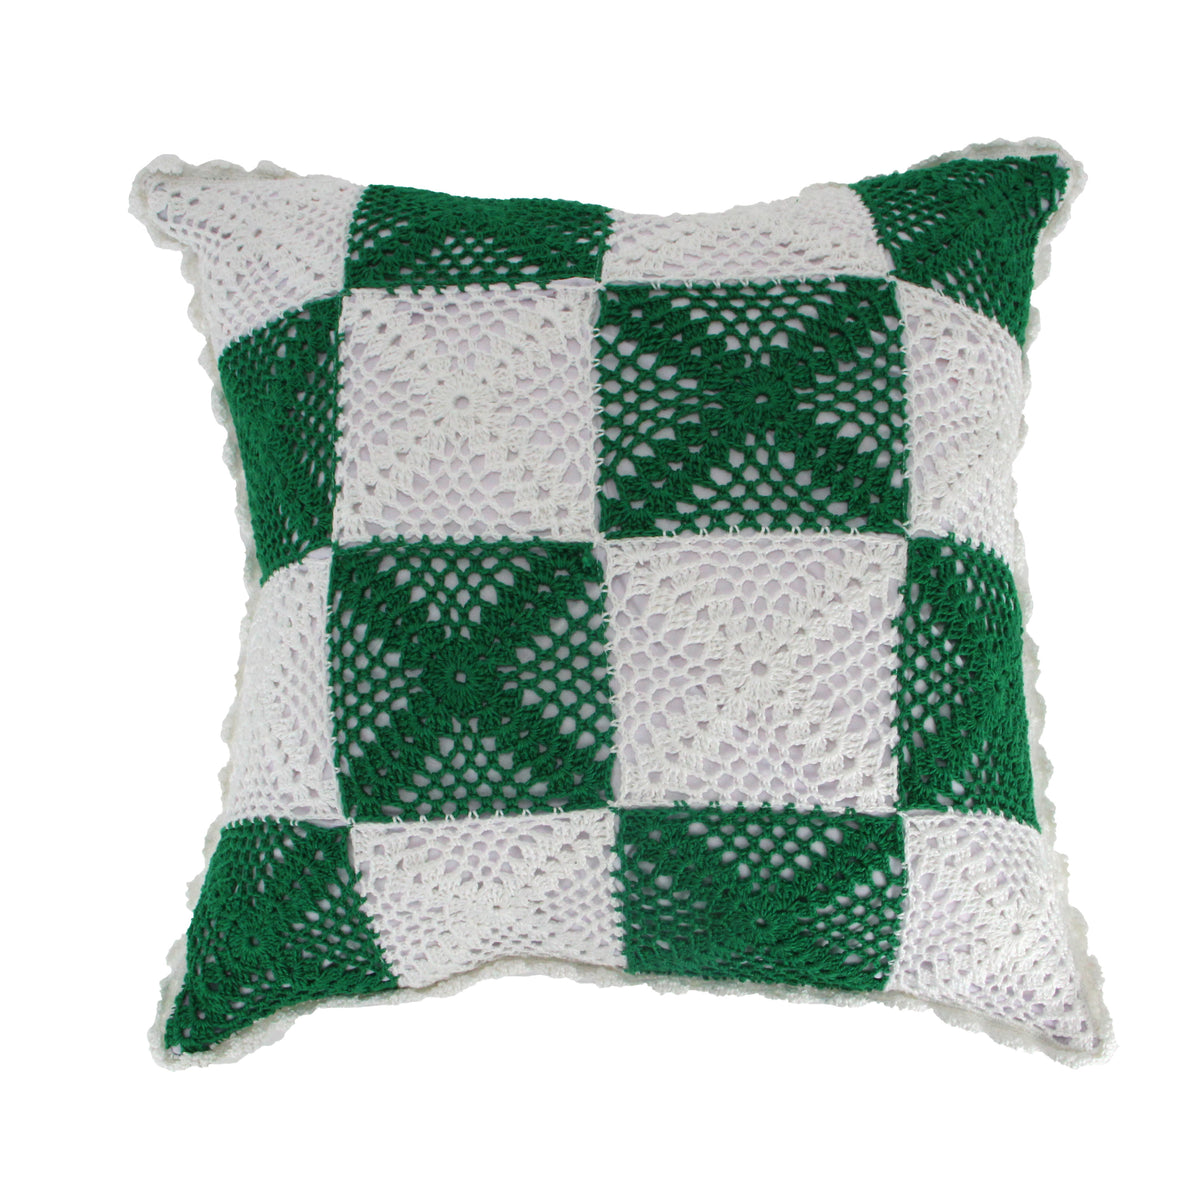 Hug Crochet Checkered Cushion Cover - Green